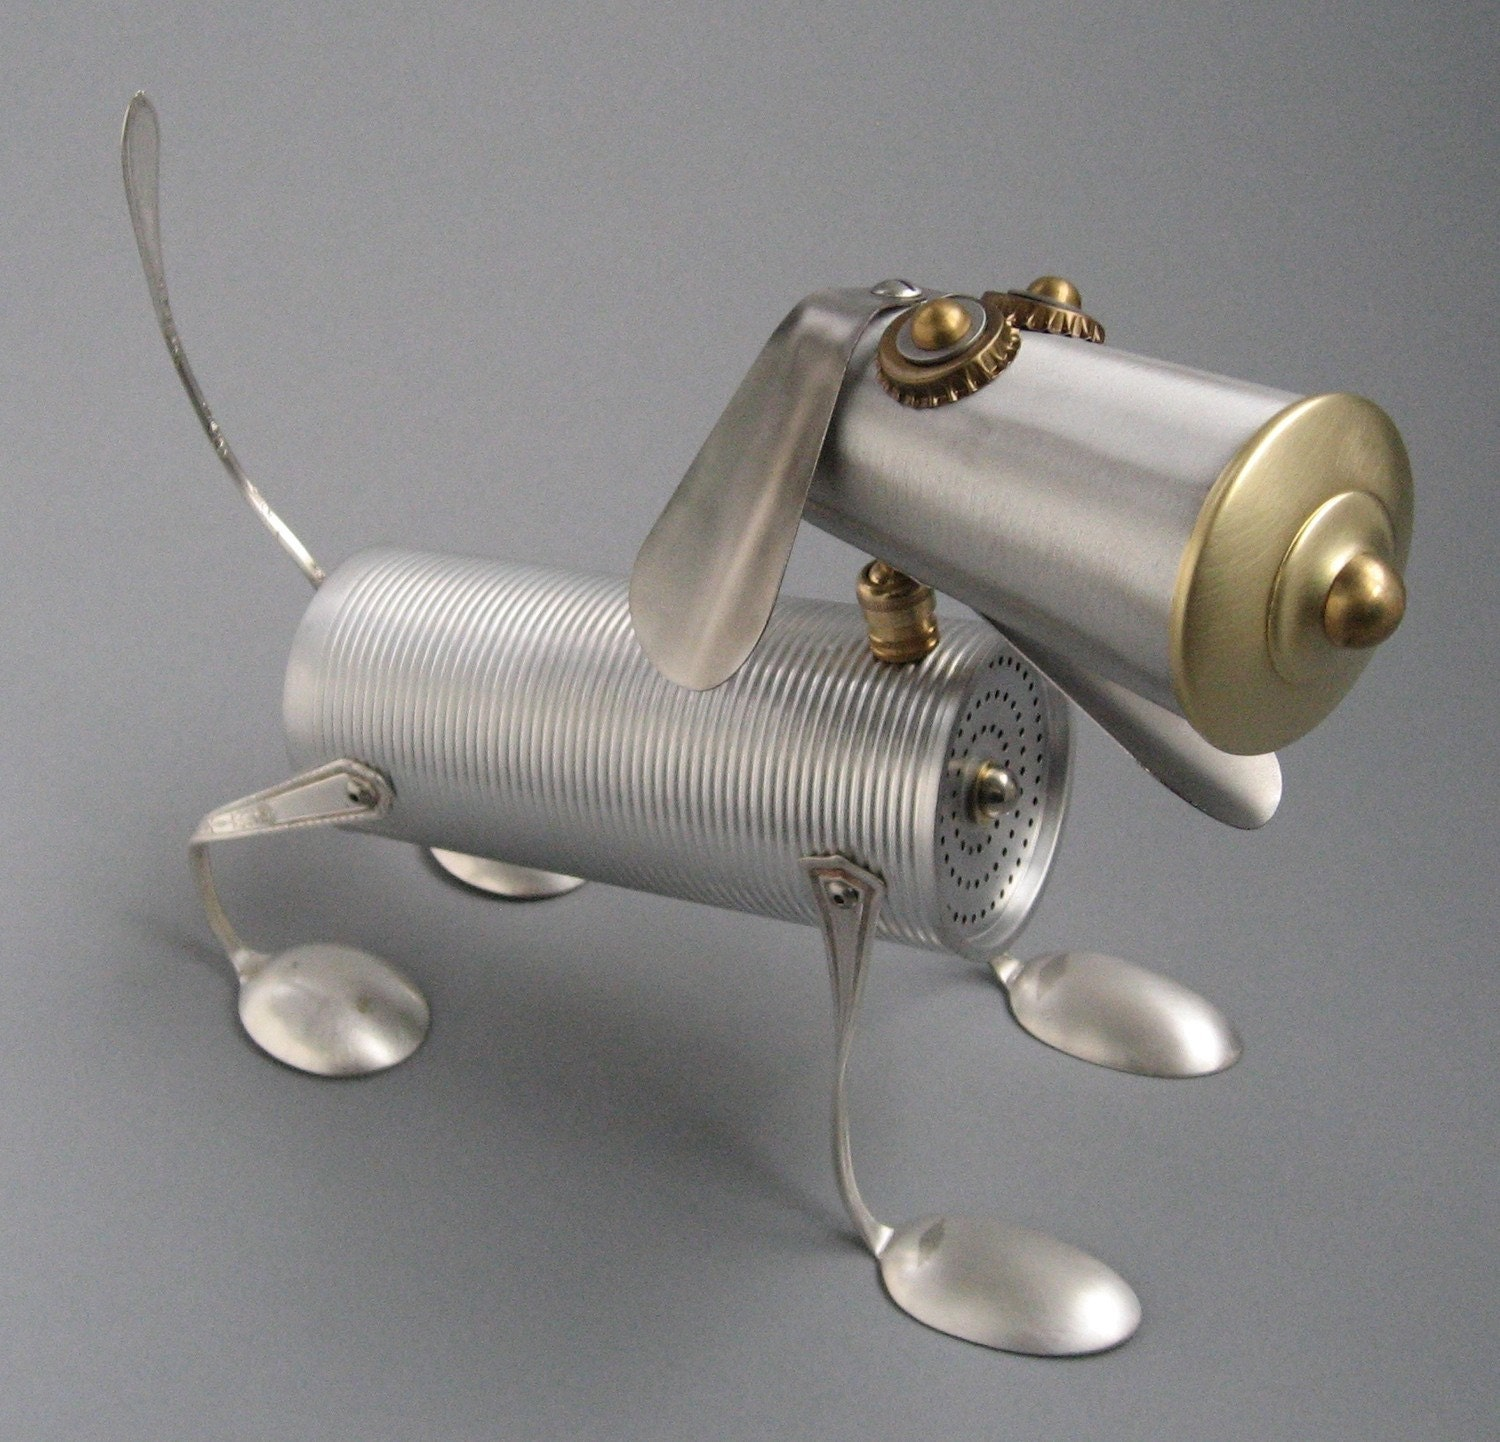 recycling metal: creative ideas, metal creatures from brian marshall